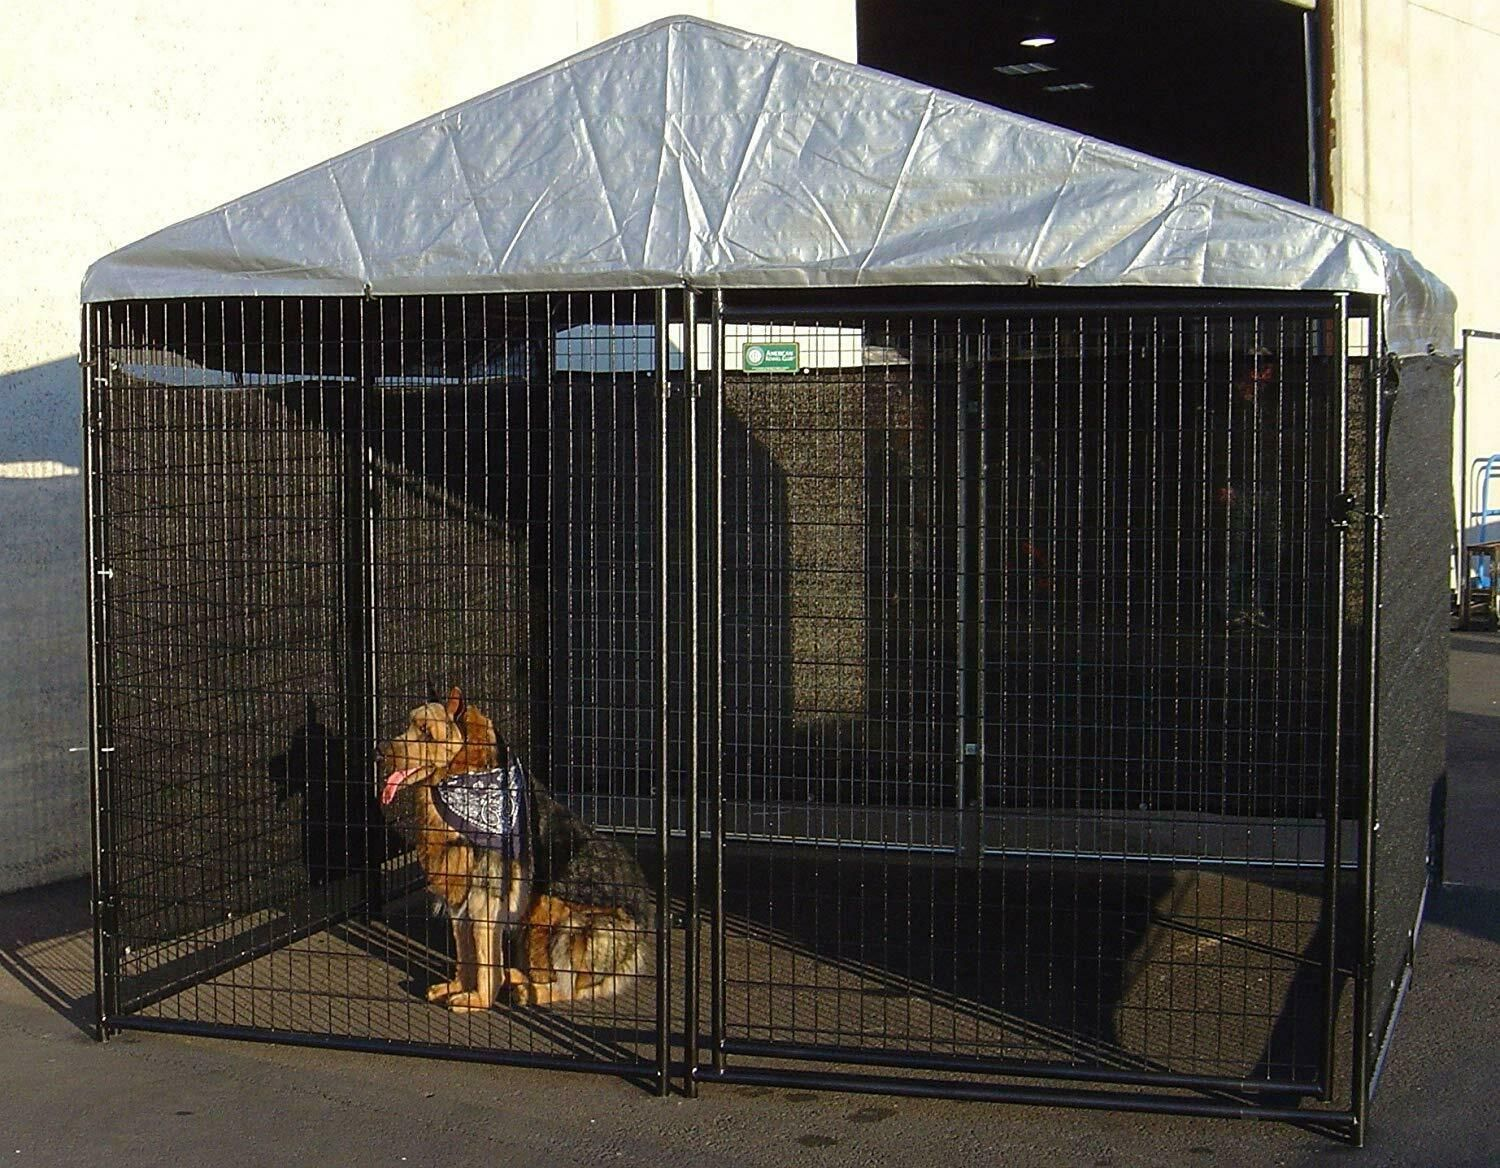 Big Dog Kennel Cage X Pet Wind Screen Extra Large Outdoor Heavy Duty Portable N 313099694662 Ebay Dog Kennel Cover Big Dog Kennels Dog Kennel